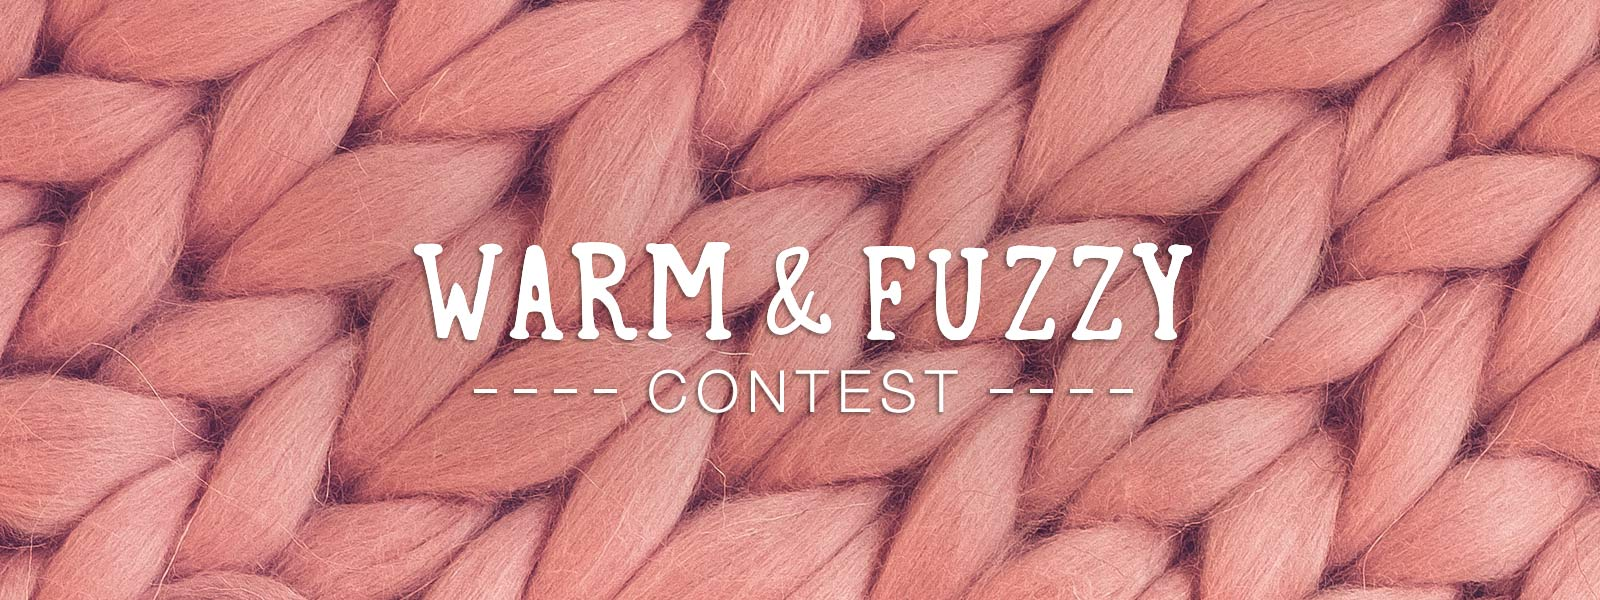 Warm and Fuzzy Contest